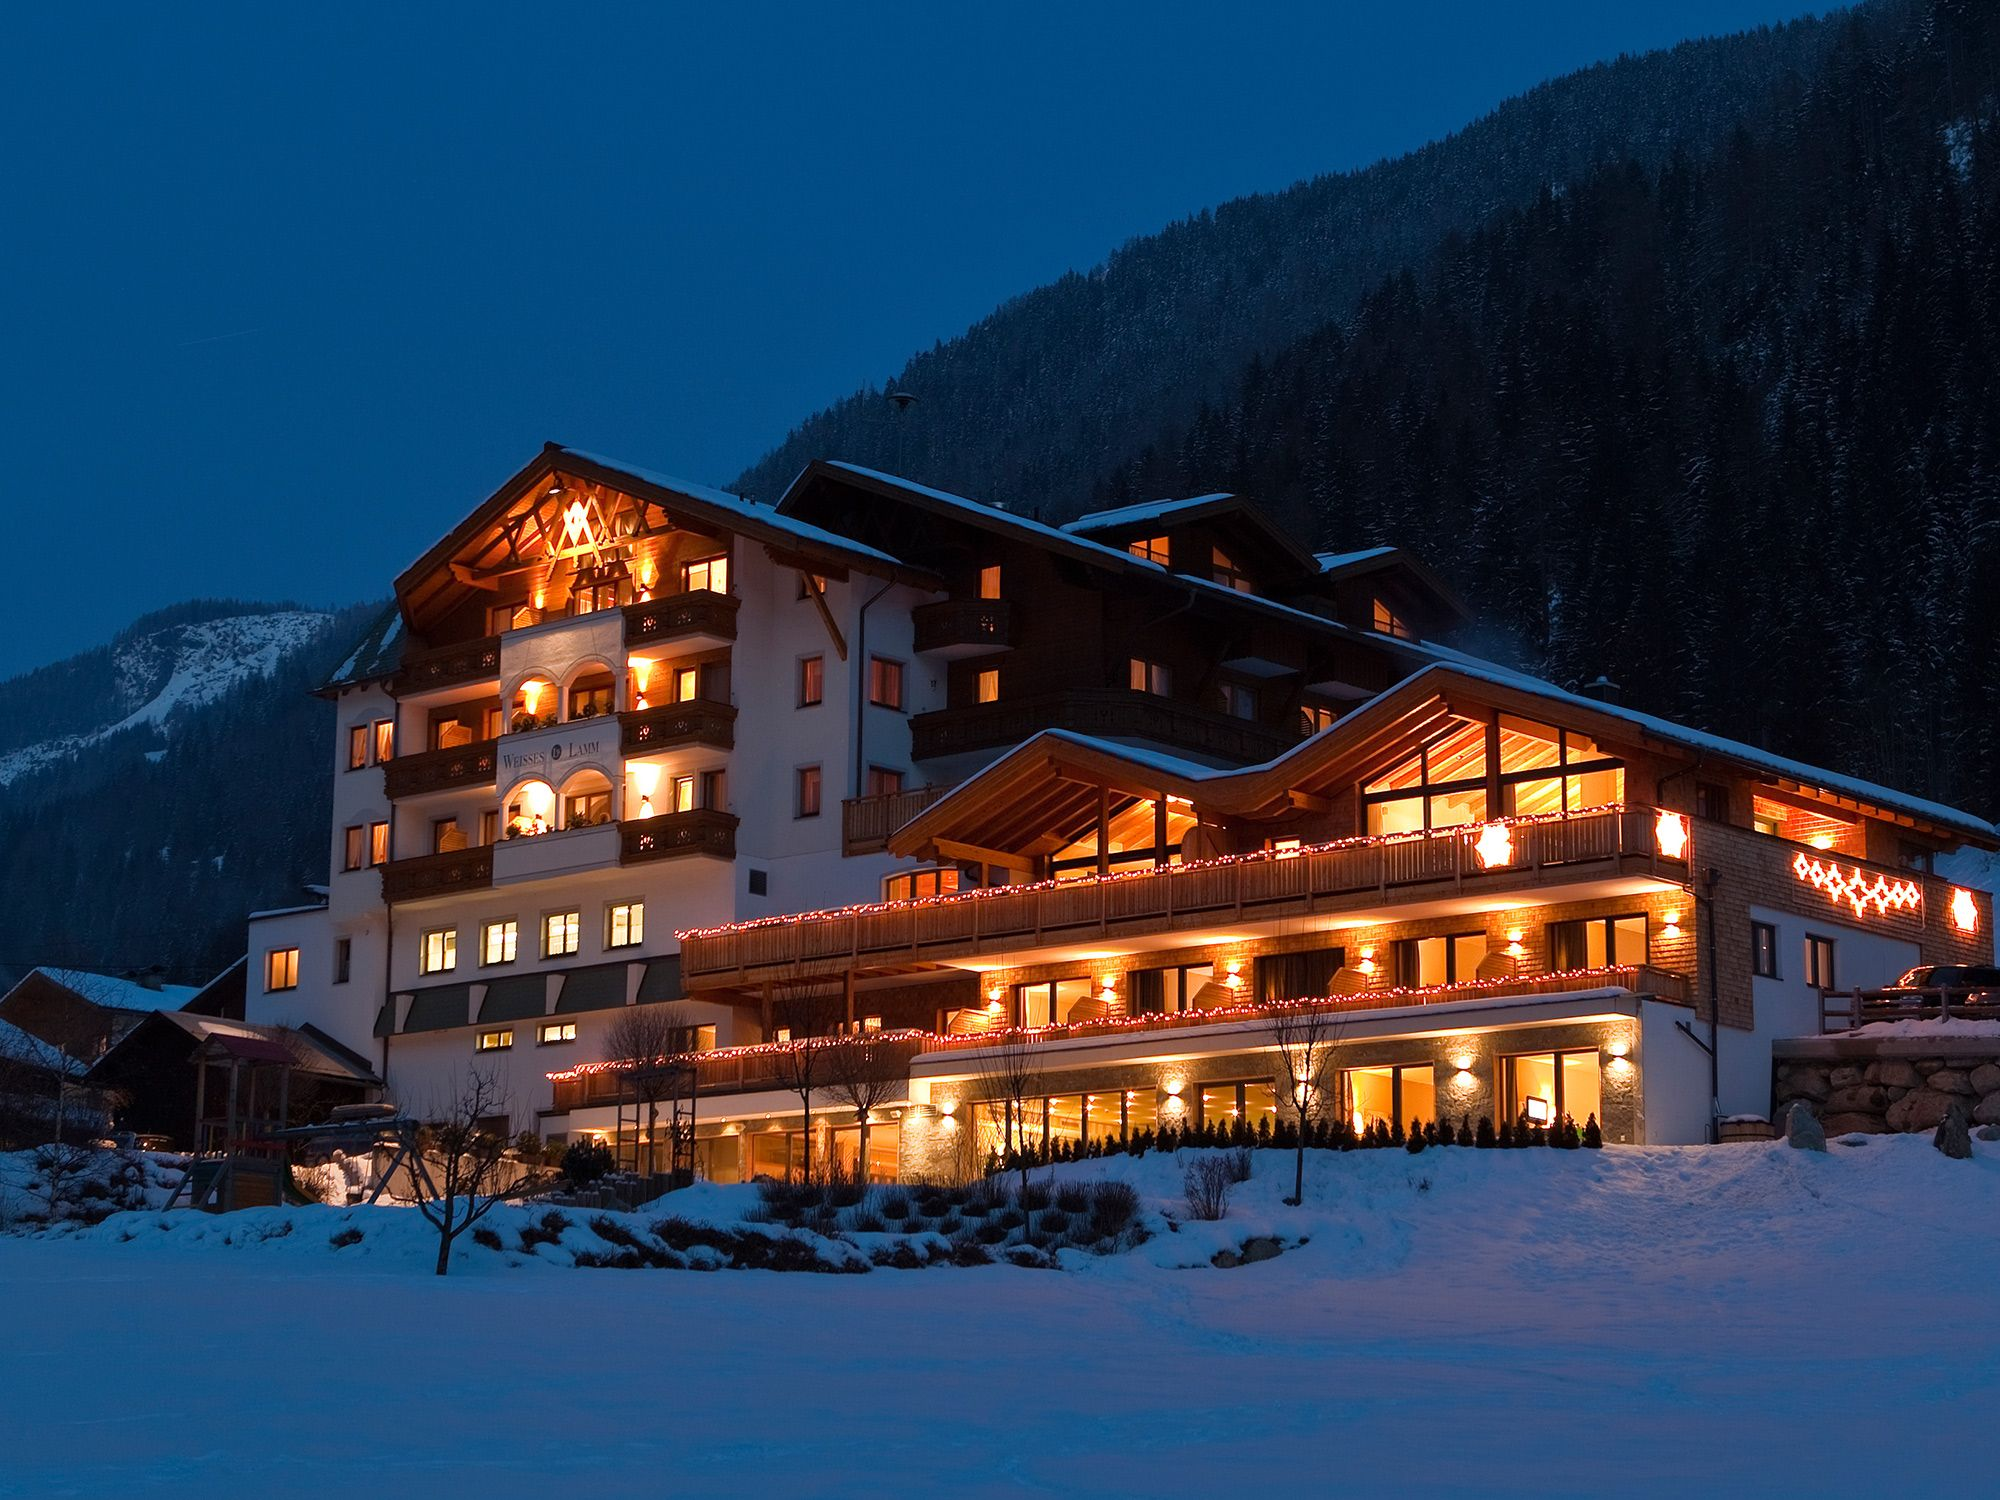 Hotel weisses lamm designhotel see im tal paznaun for Design hotels alps